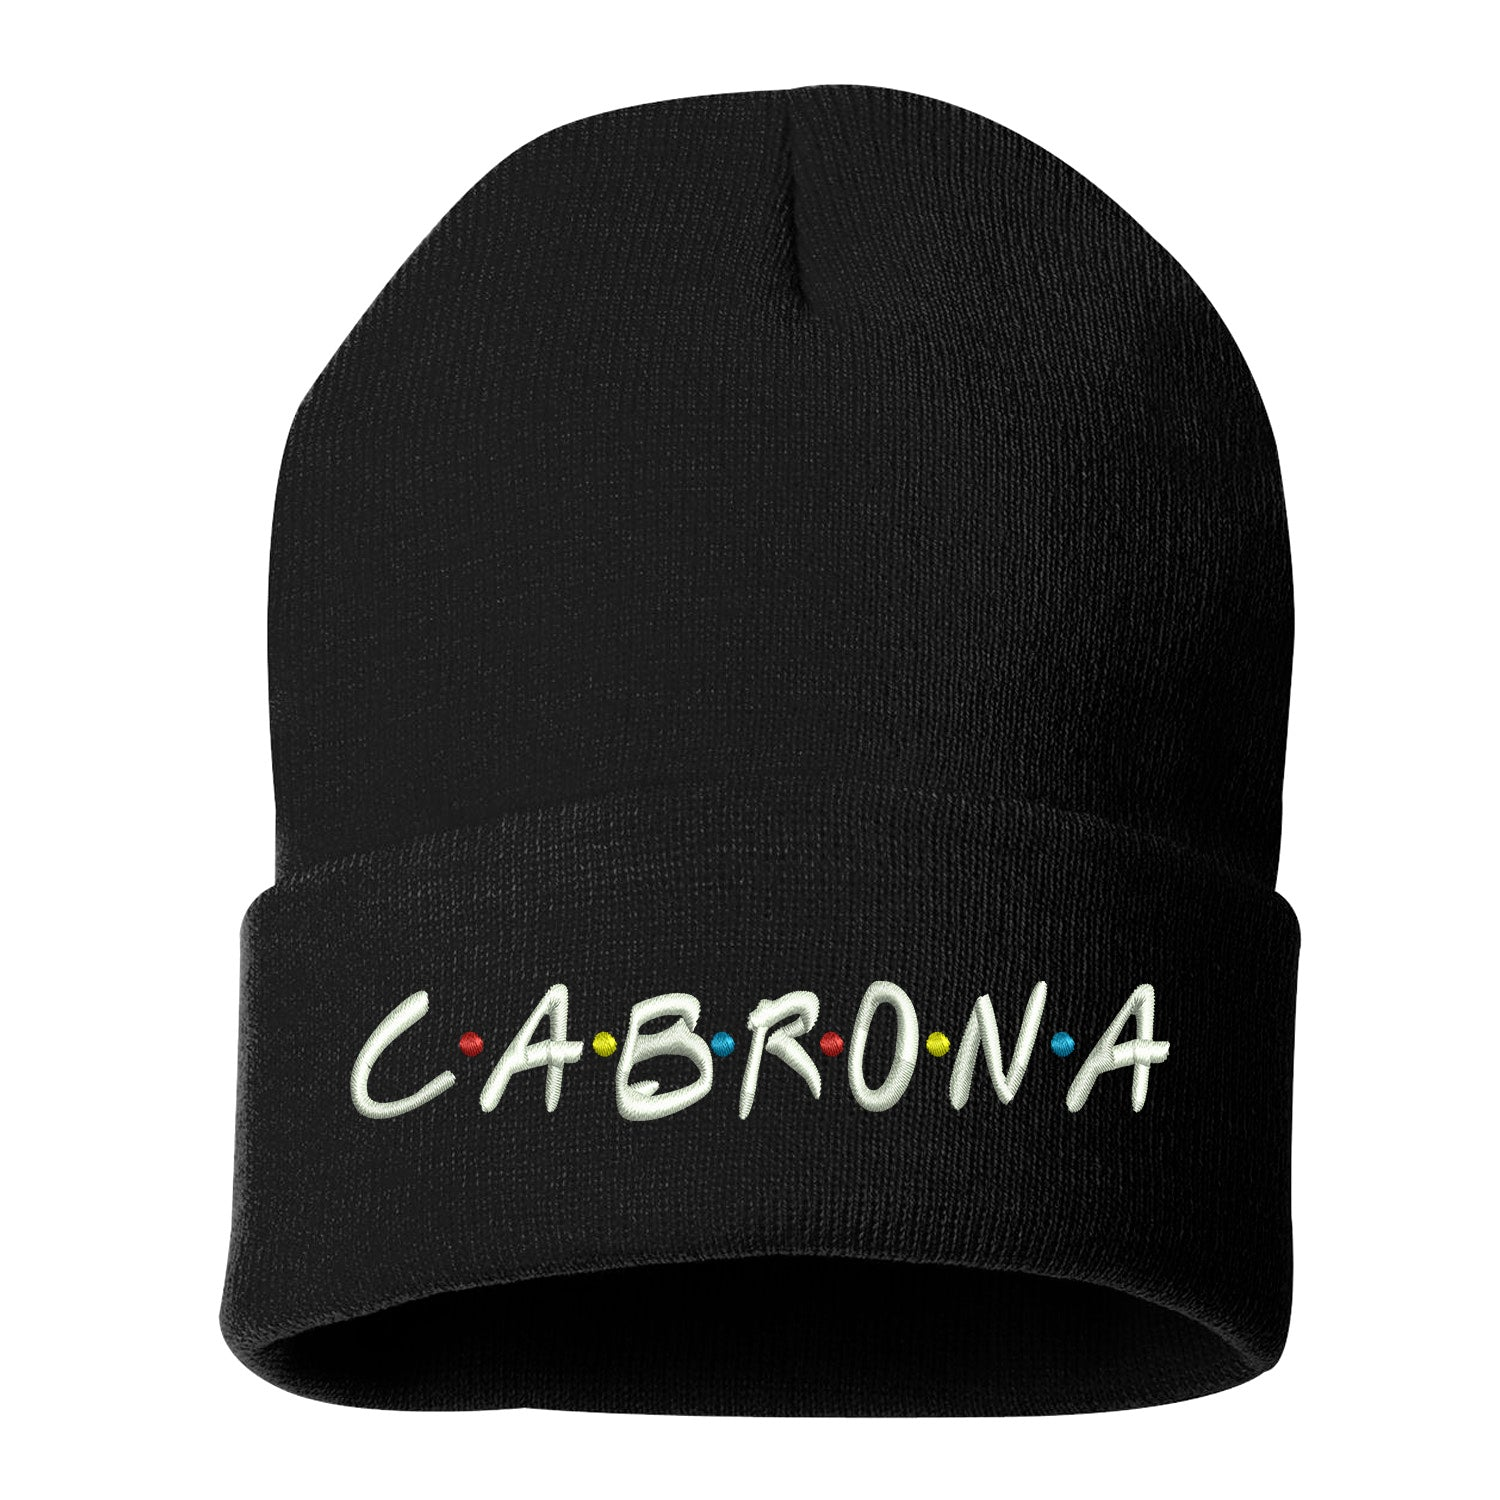 Cabrona Friends Font Cuffed Beanie, Cuffed Beanie Cap, Cabrona Embroidery, Embroidered Beanie Cap, Friends Font, Custom Embroidery, DSY Lifestyle Beanie, Red Cuffed Beanie, Made in LA